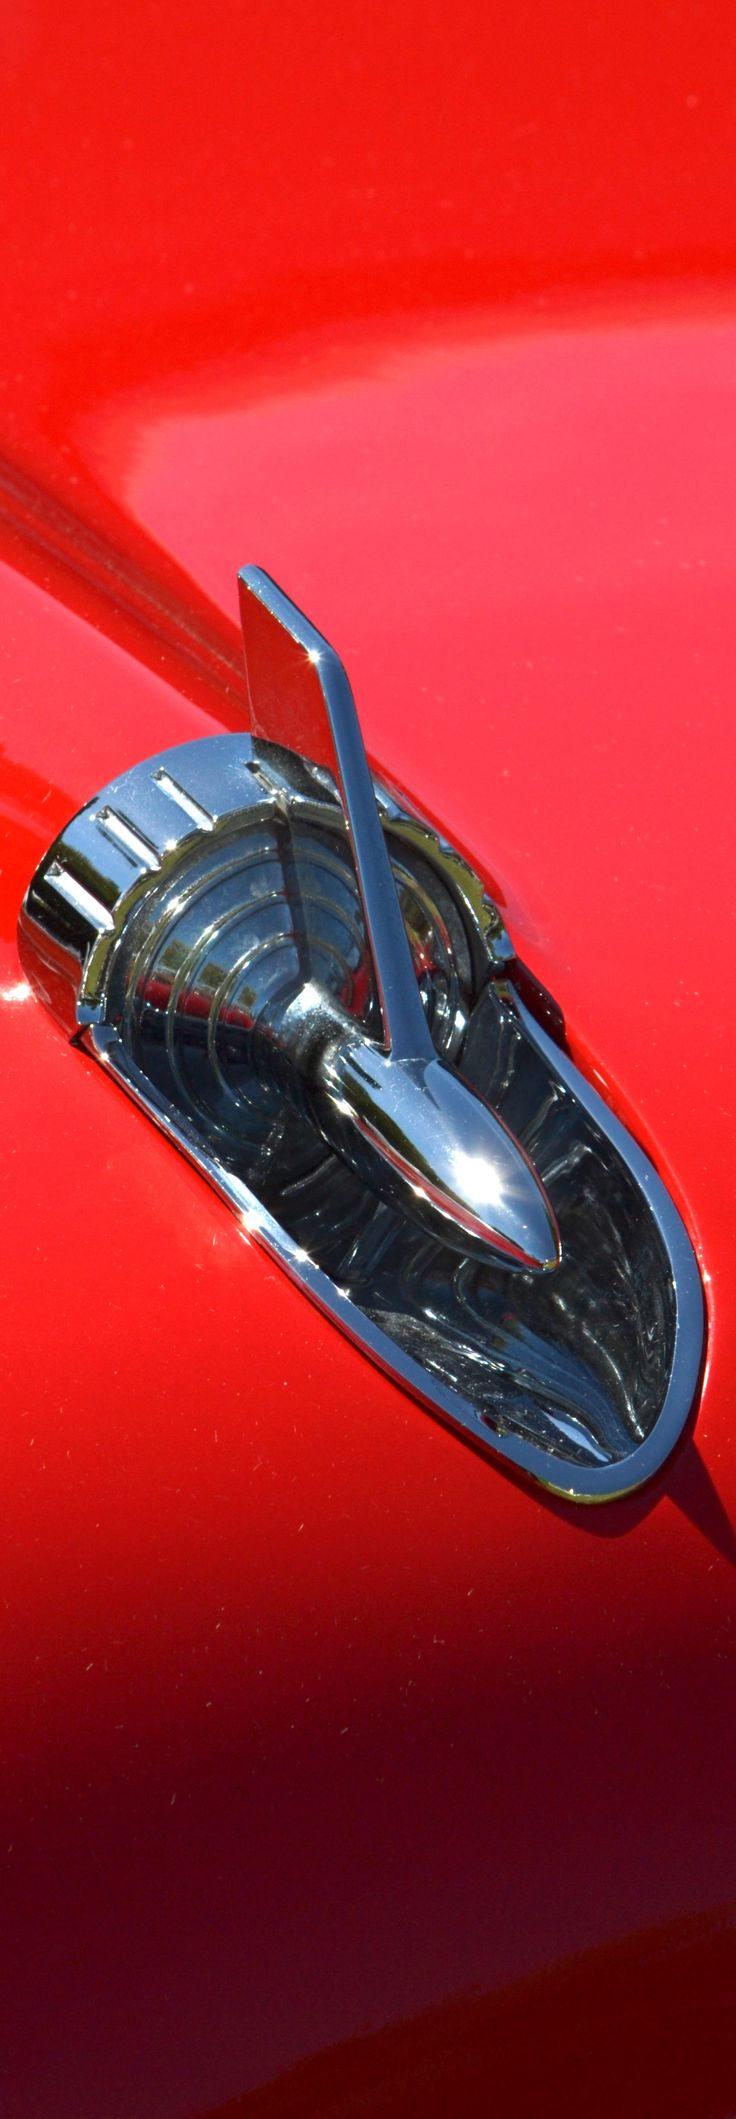 Red 57 Chevy Hood By Http://dean Ferreira.artistwebsites.com